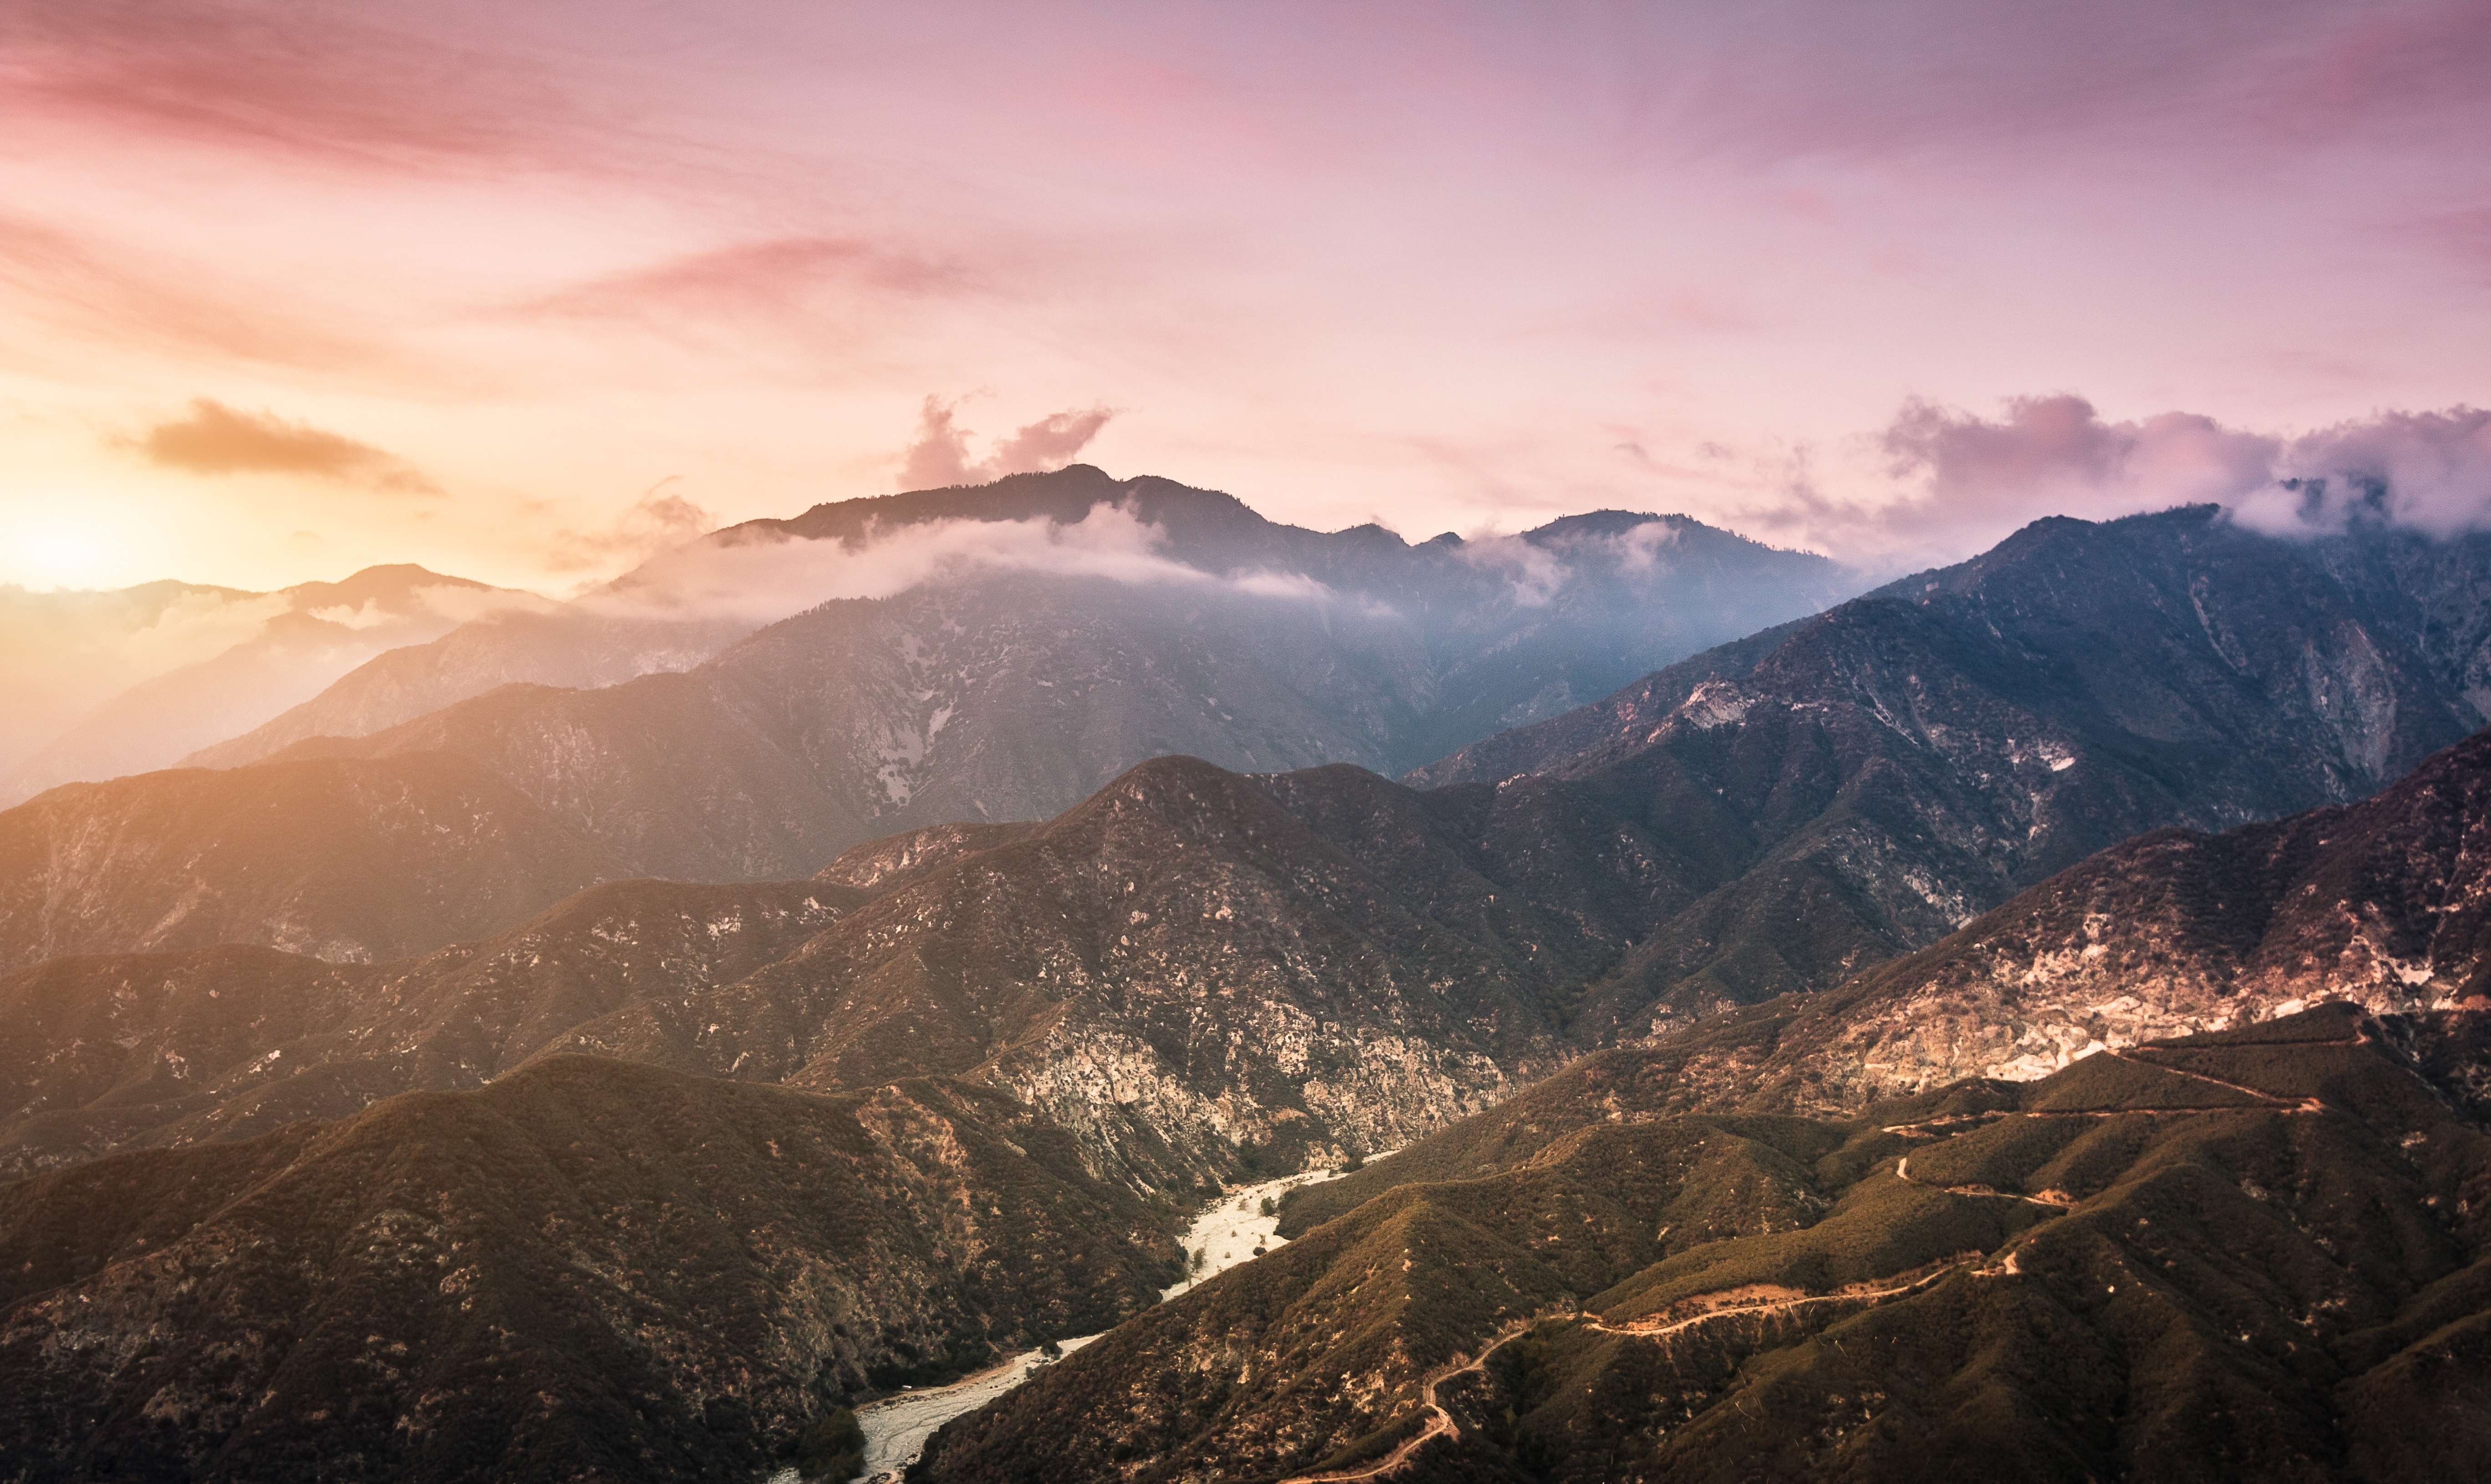 Mountains View From Mountaintop 2272 wallpaper